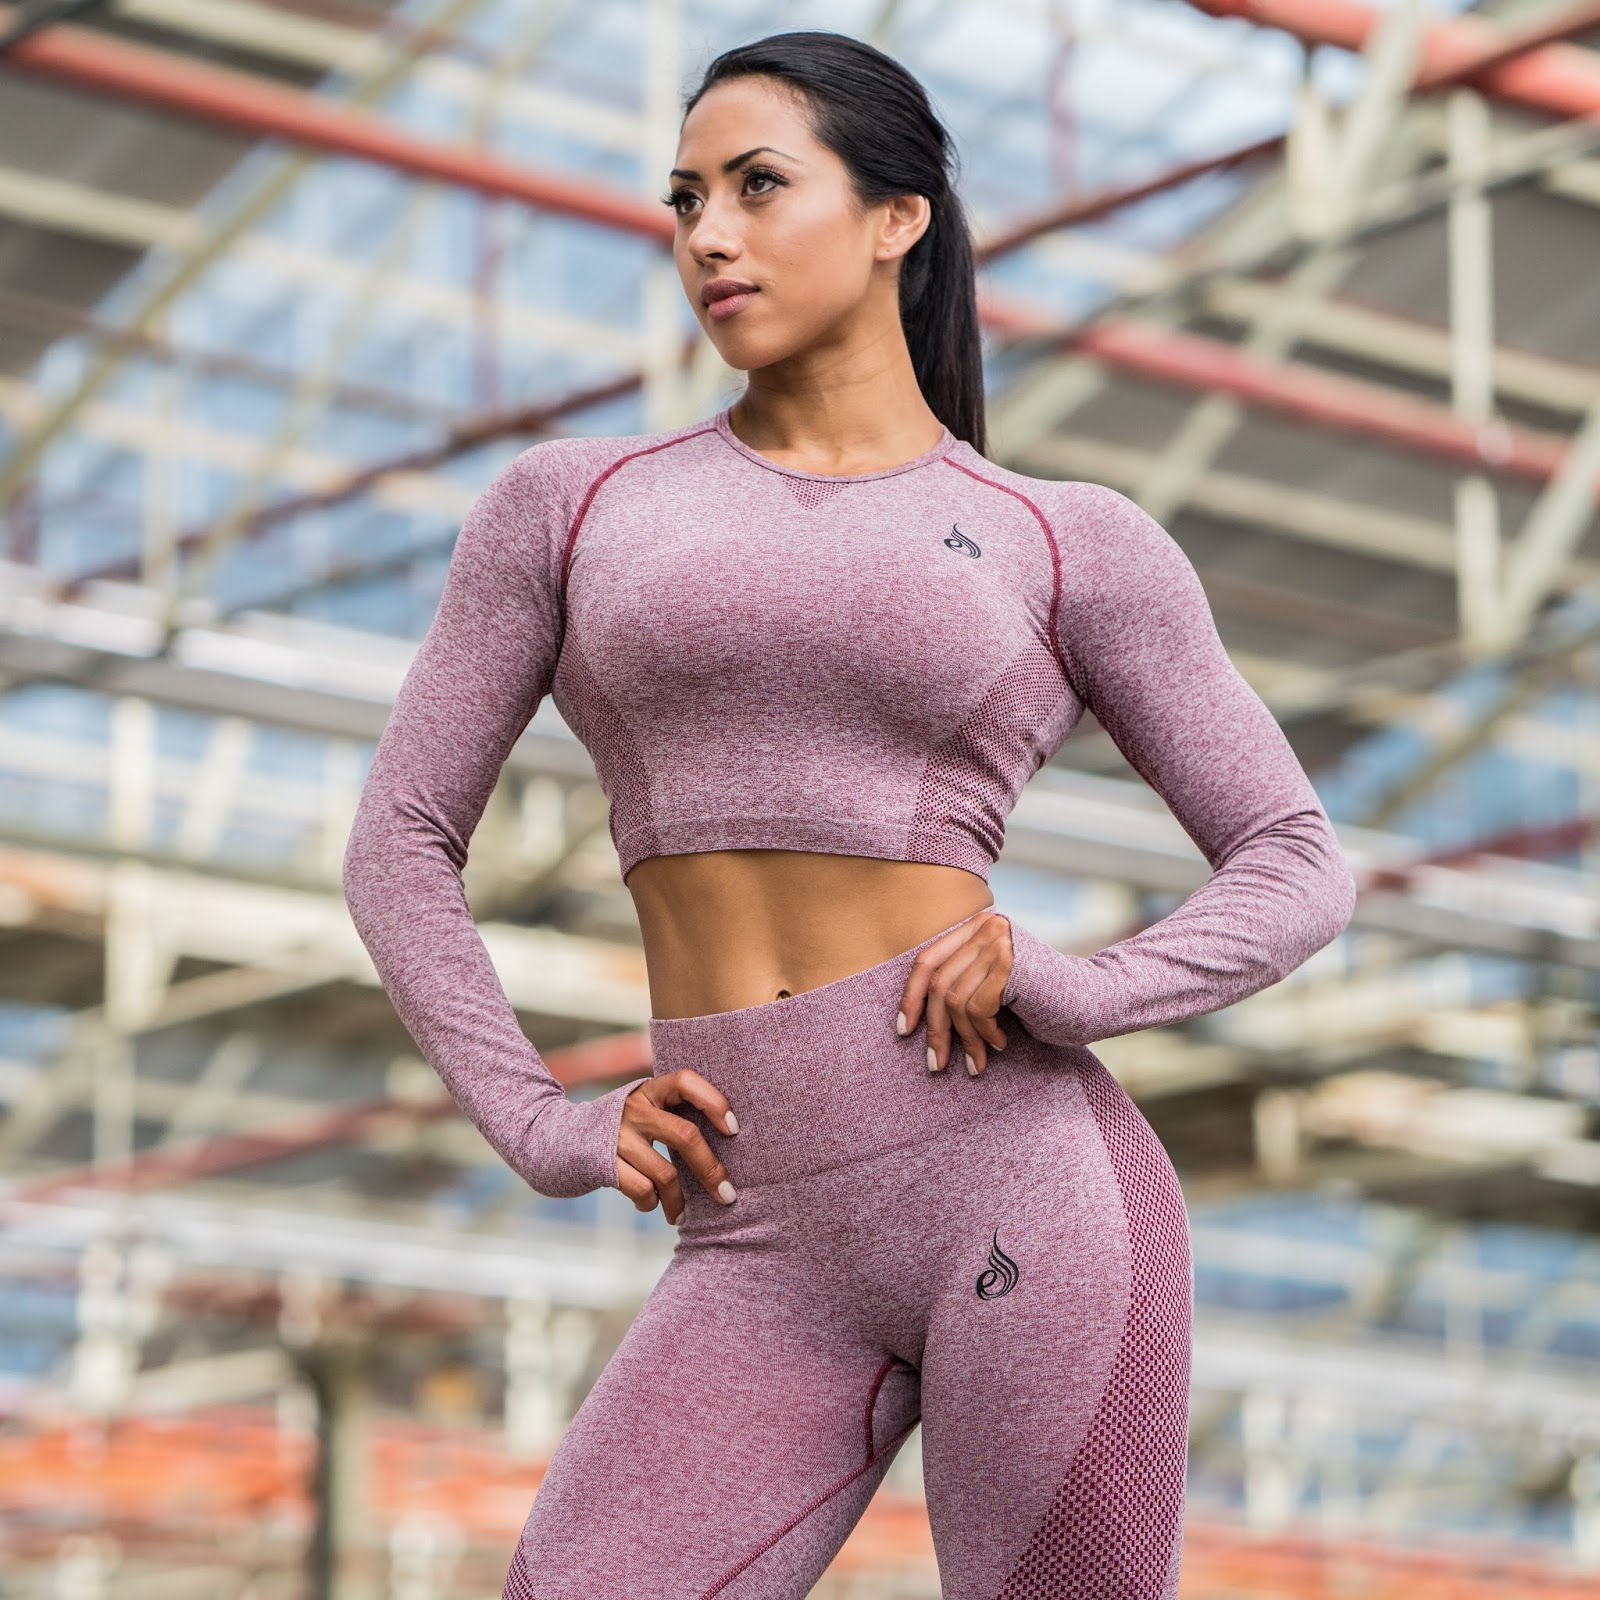 020d06512abaf4 Ryderwear Activewear | Infinity Seamless Collection | Fashion Blog ...